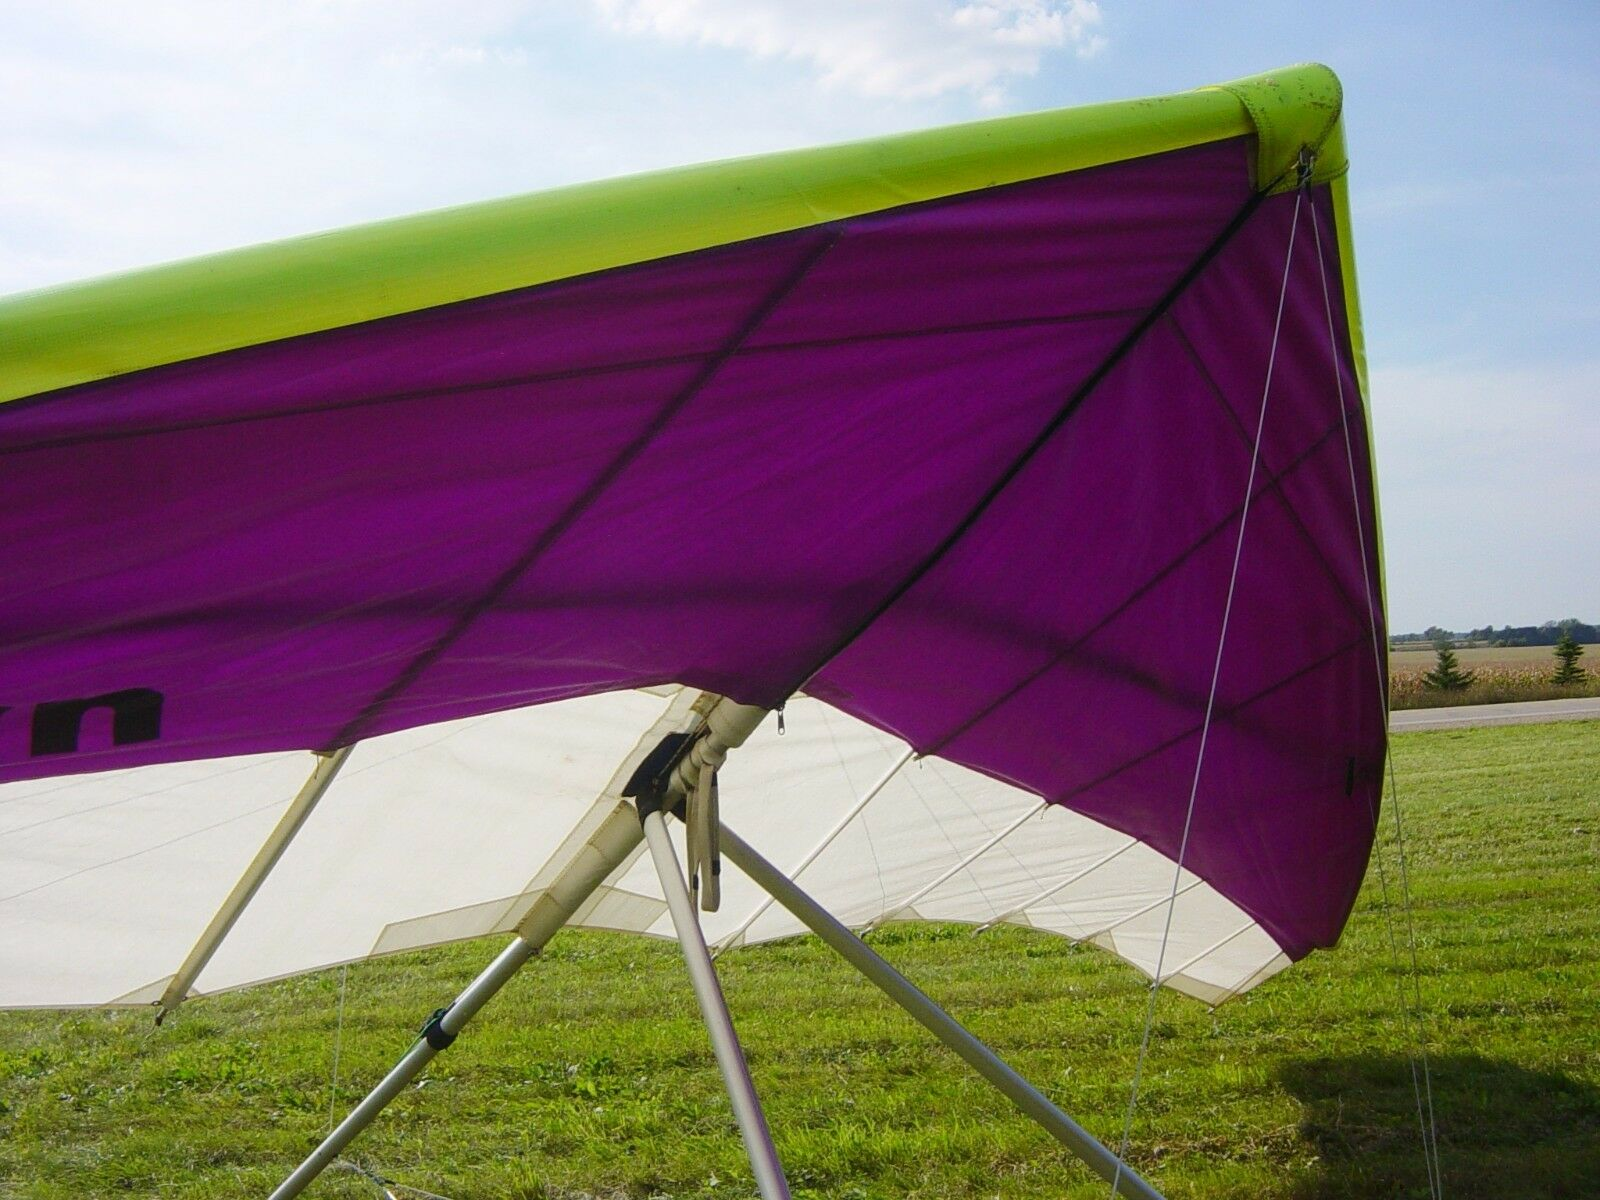 UP ALTAIR SATURN 147 Hang Gliding Novice Glider with VG --- Very Good Condition